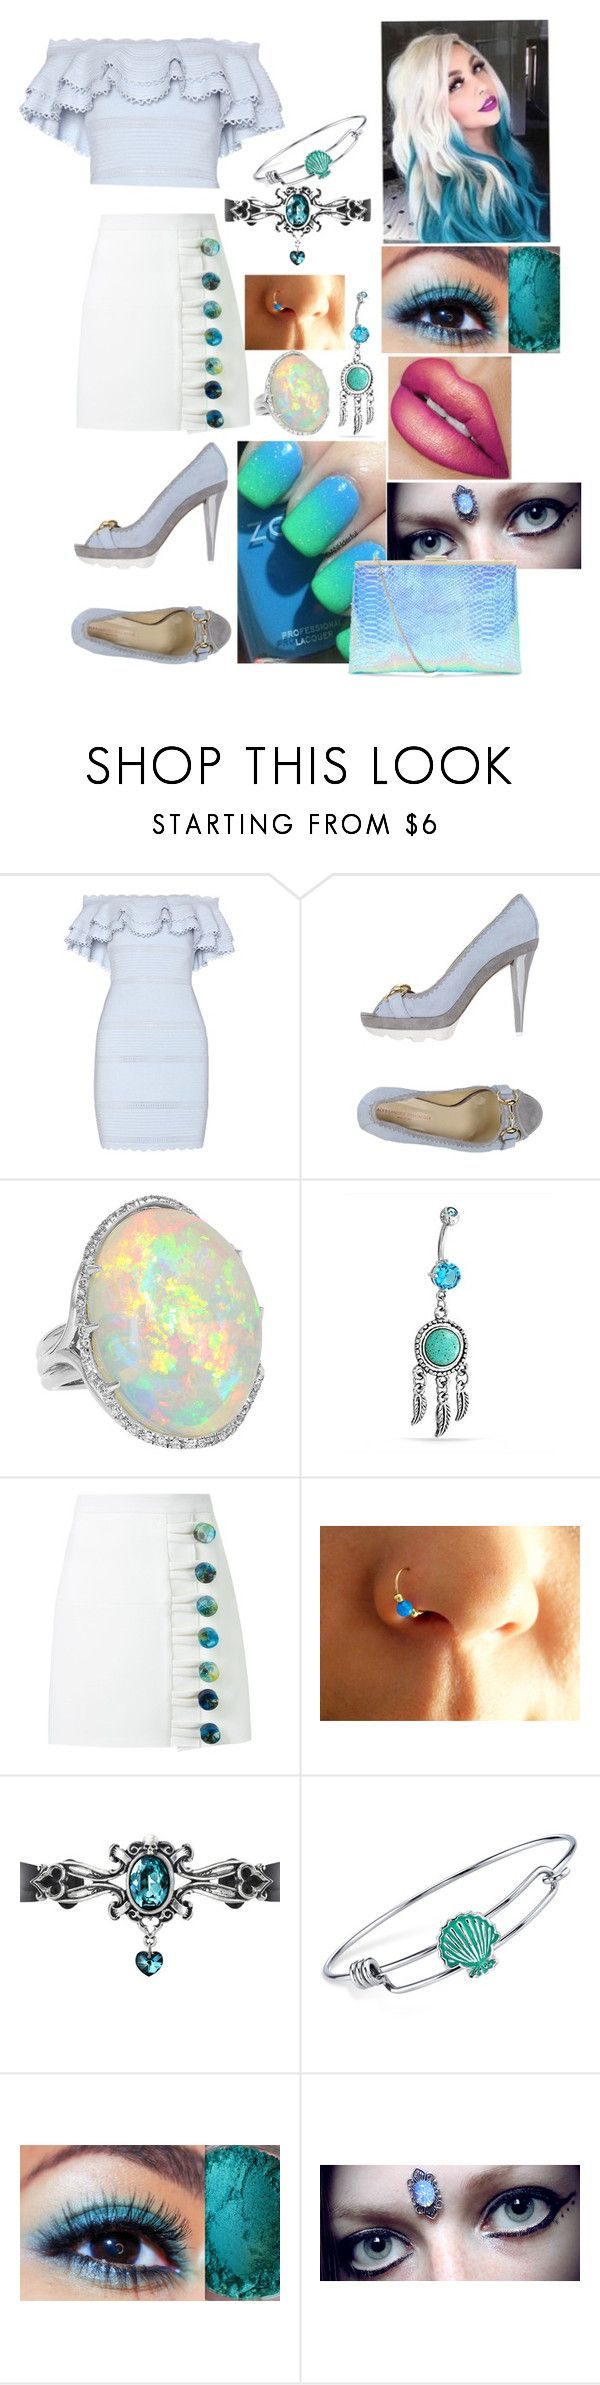 """""""Untitled #1687"""" by mermaids533 ❤ liked on Polyvore featuring Alexander McQueen, Alessandro Dell'Acqua, Bling Jewelry, Christopher Esber and Disney"""